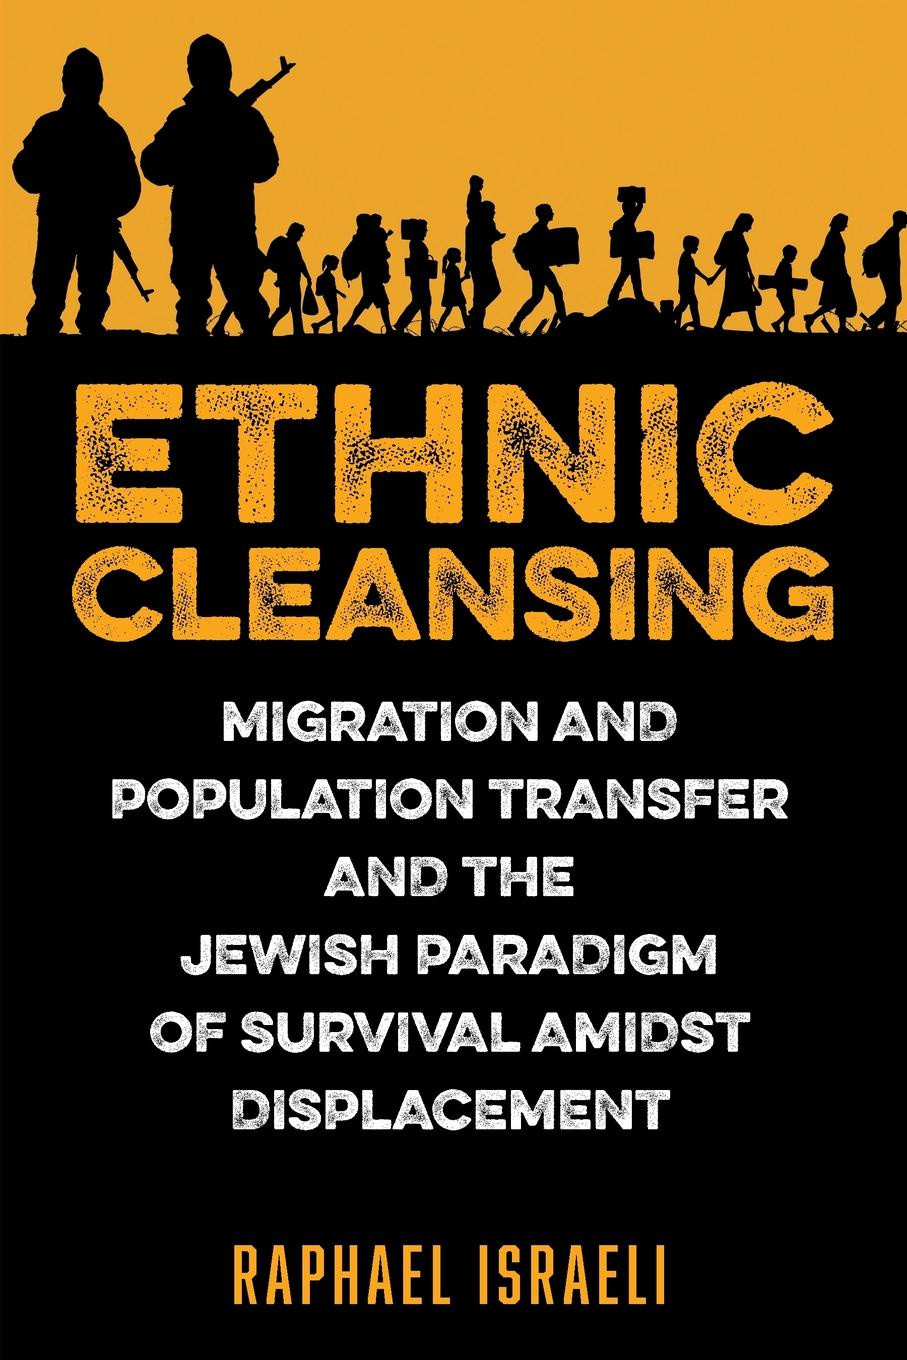 Raphael Israeli Ethnic Cleansing. Migration and Population Transfer and the Jewish Paradigm of Survival Amidst Displacement ethnic population and product choices